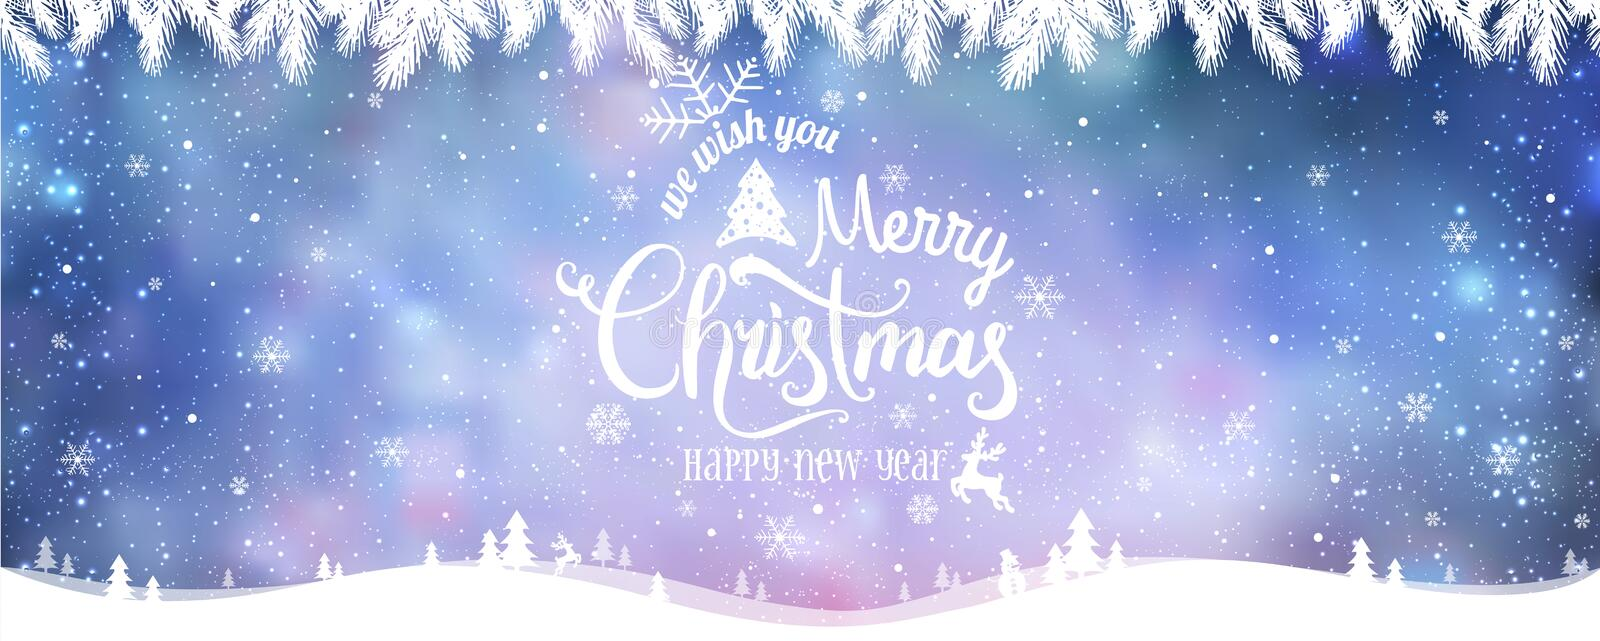 Merry Christmas and New Year typographical on holidays background with winter landscape with snowflakes, light, stars. stock illustration